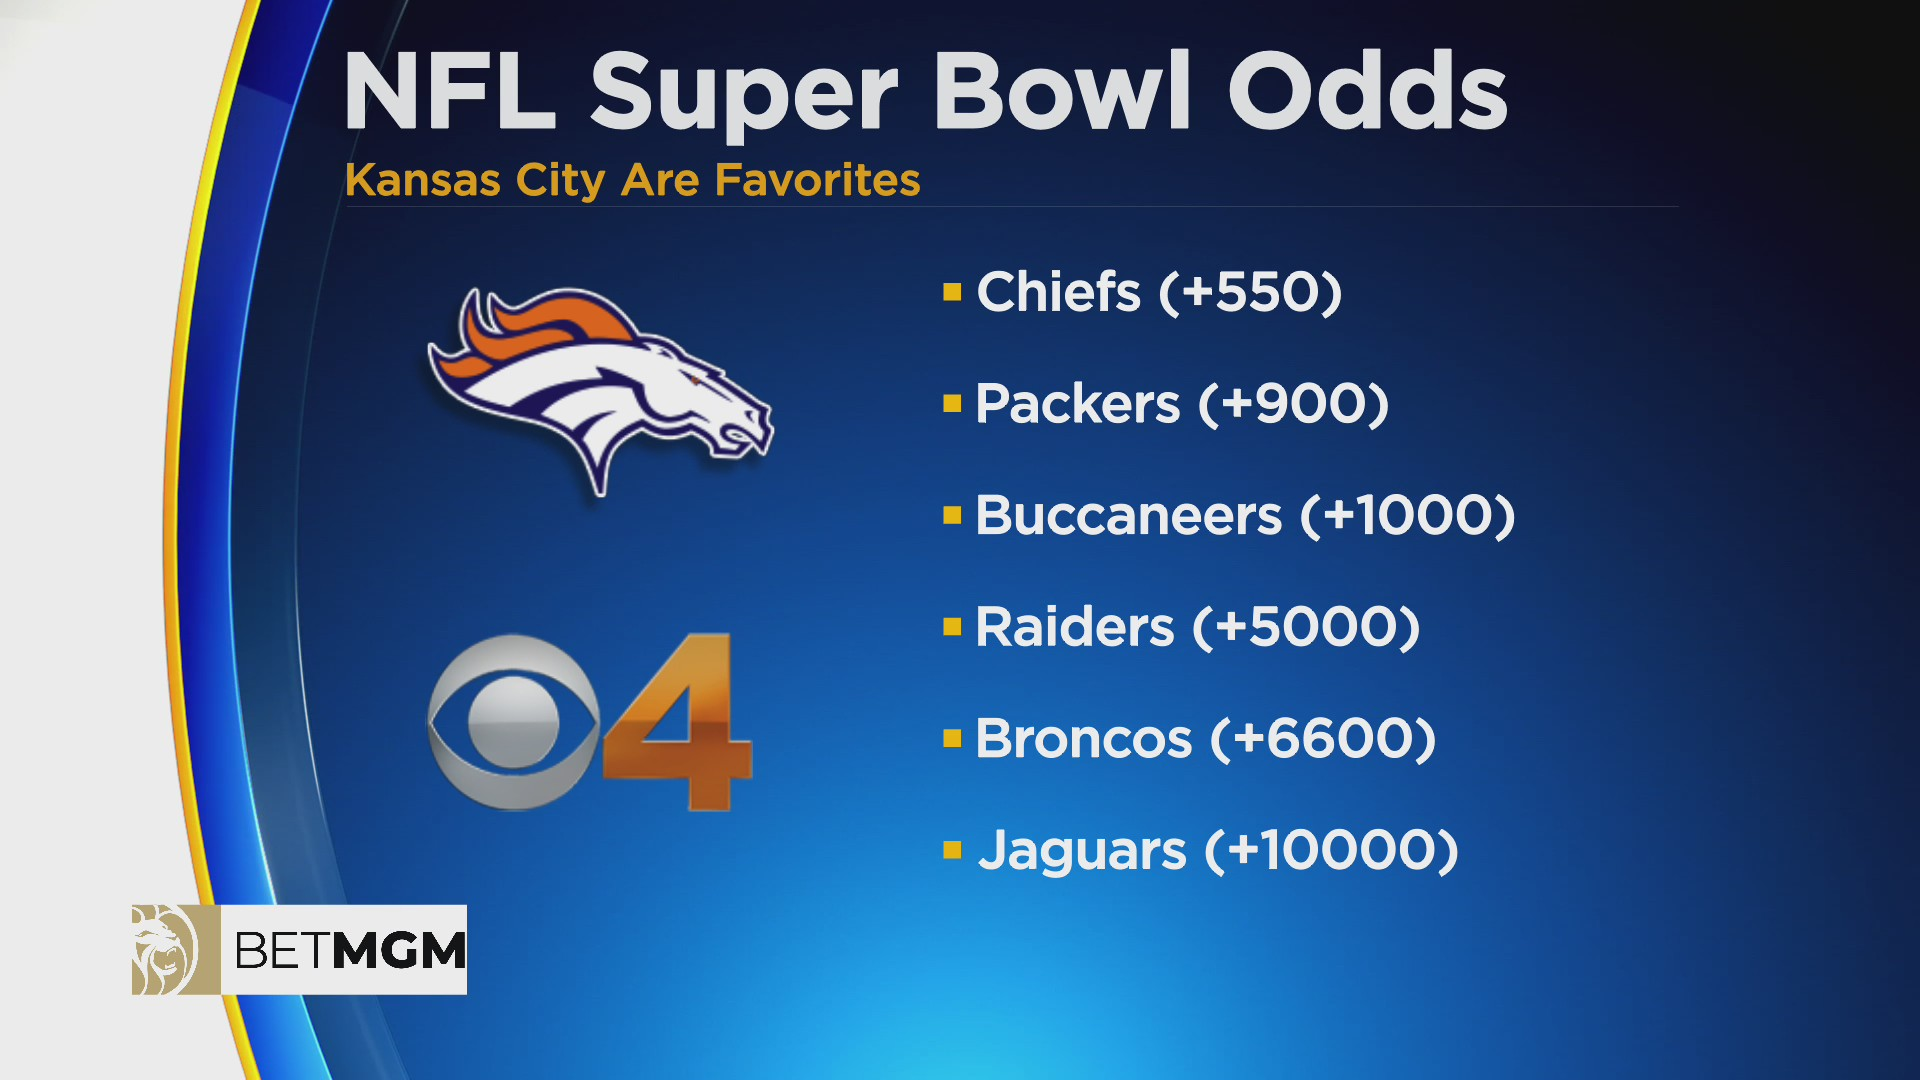 Bet on broncos to win super bowl aiding and abetting breach of fiduciary duty pennsylvania turnpike